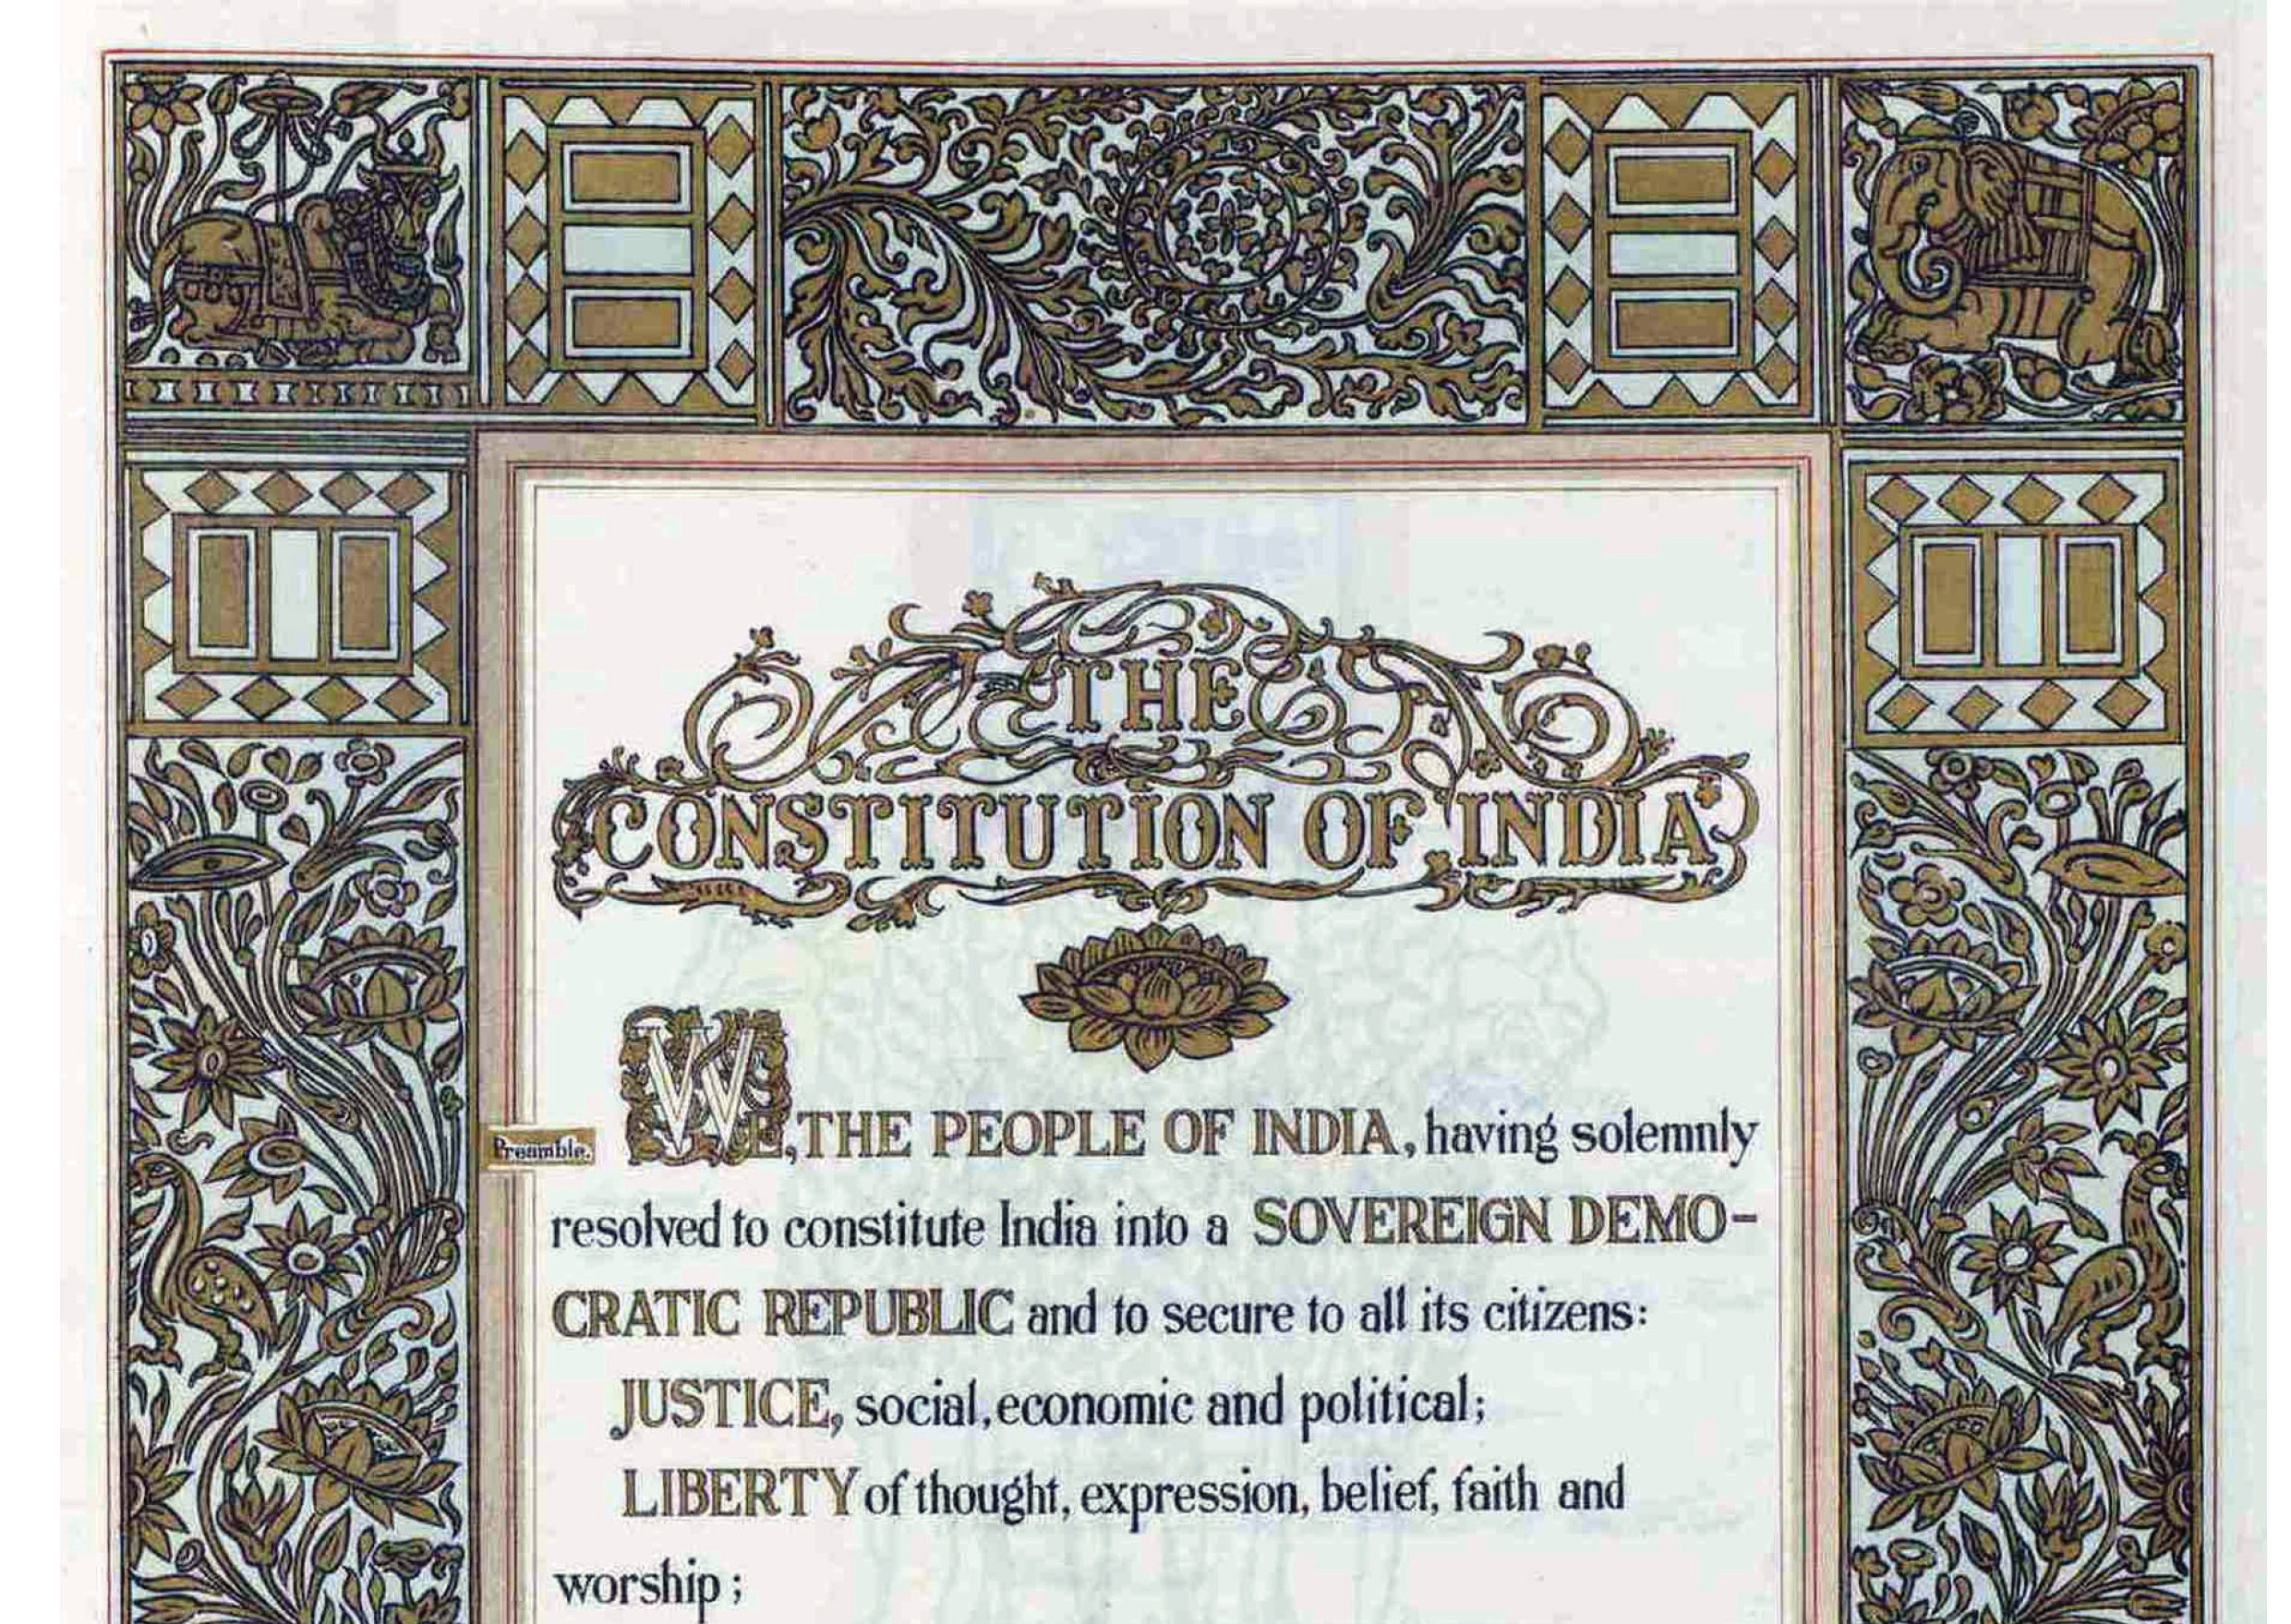 Preamble to the Constitution of India.